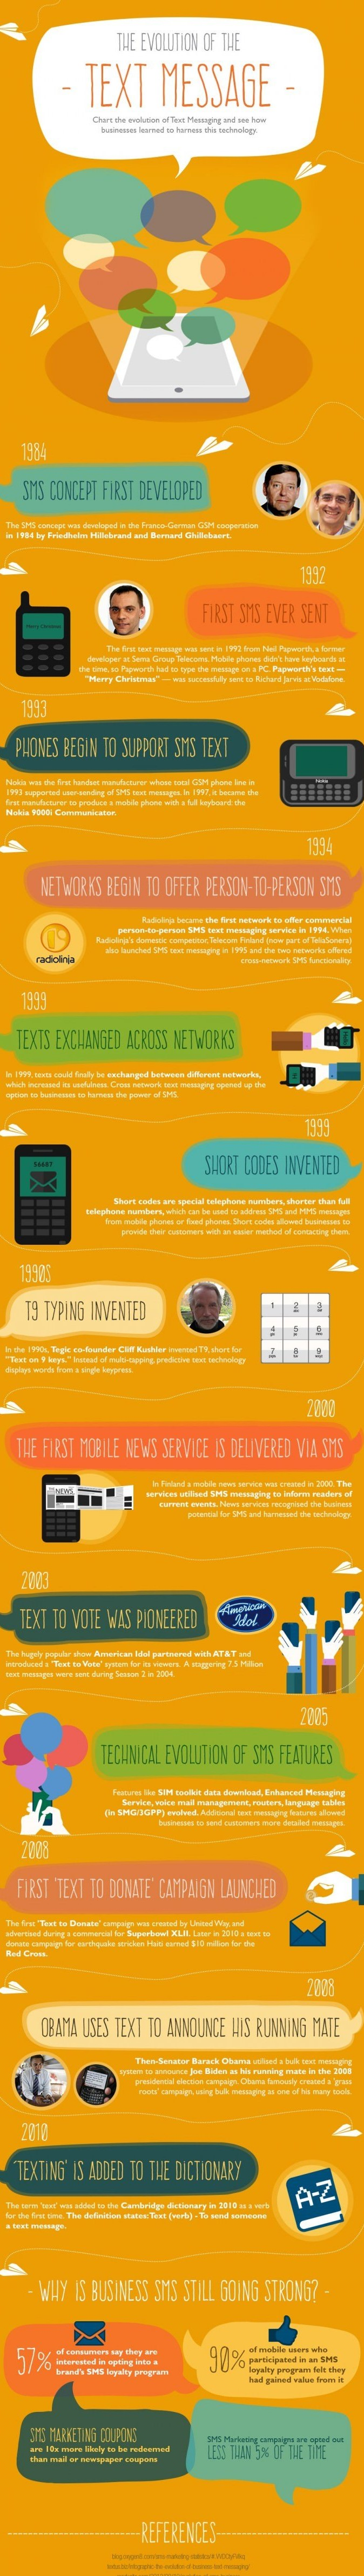 sms marketing evolution